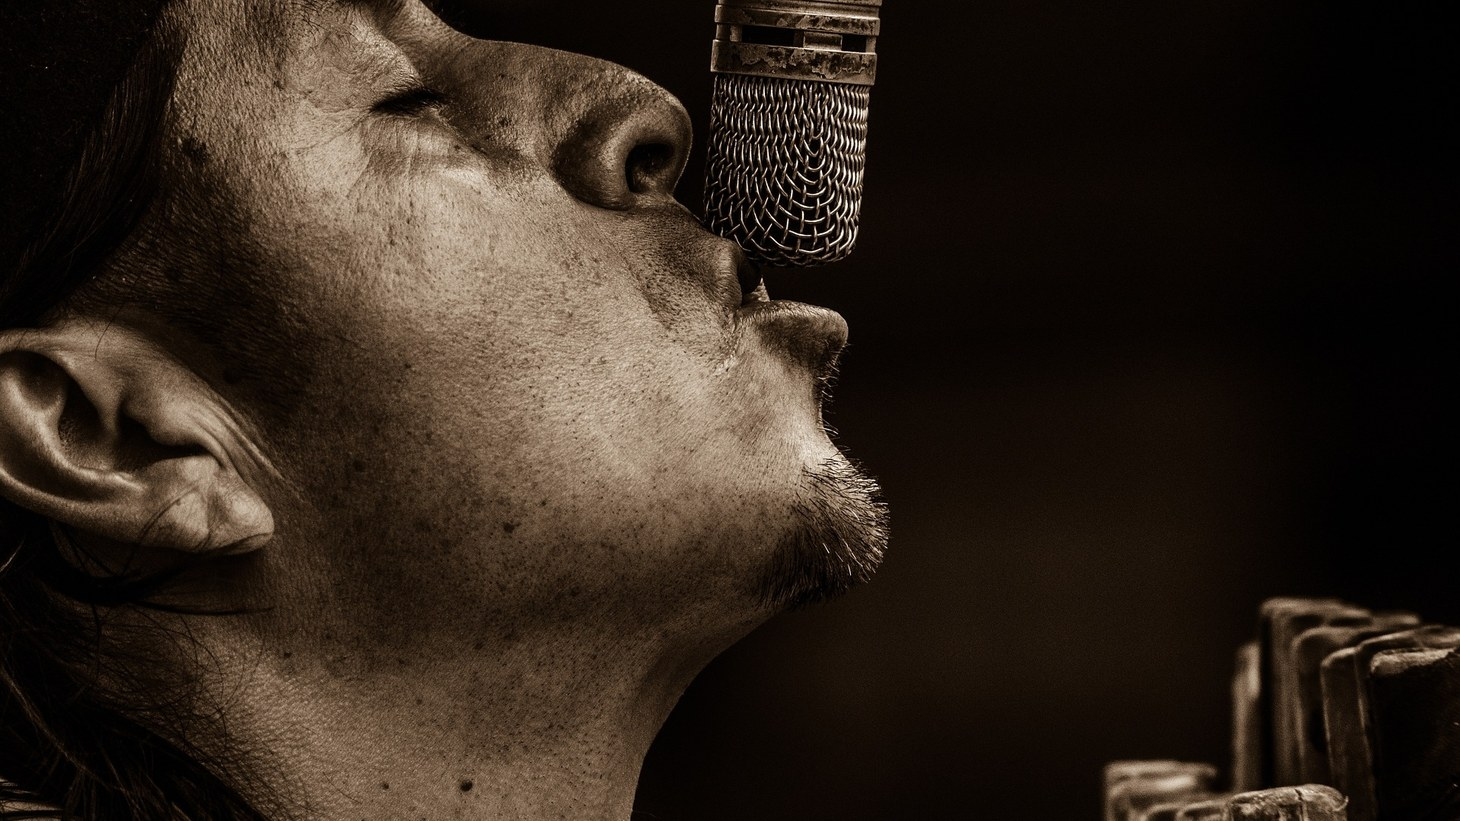 Man singing into a microphone.